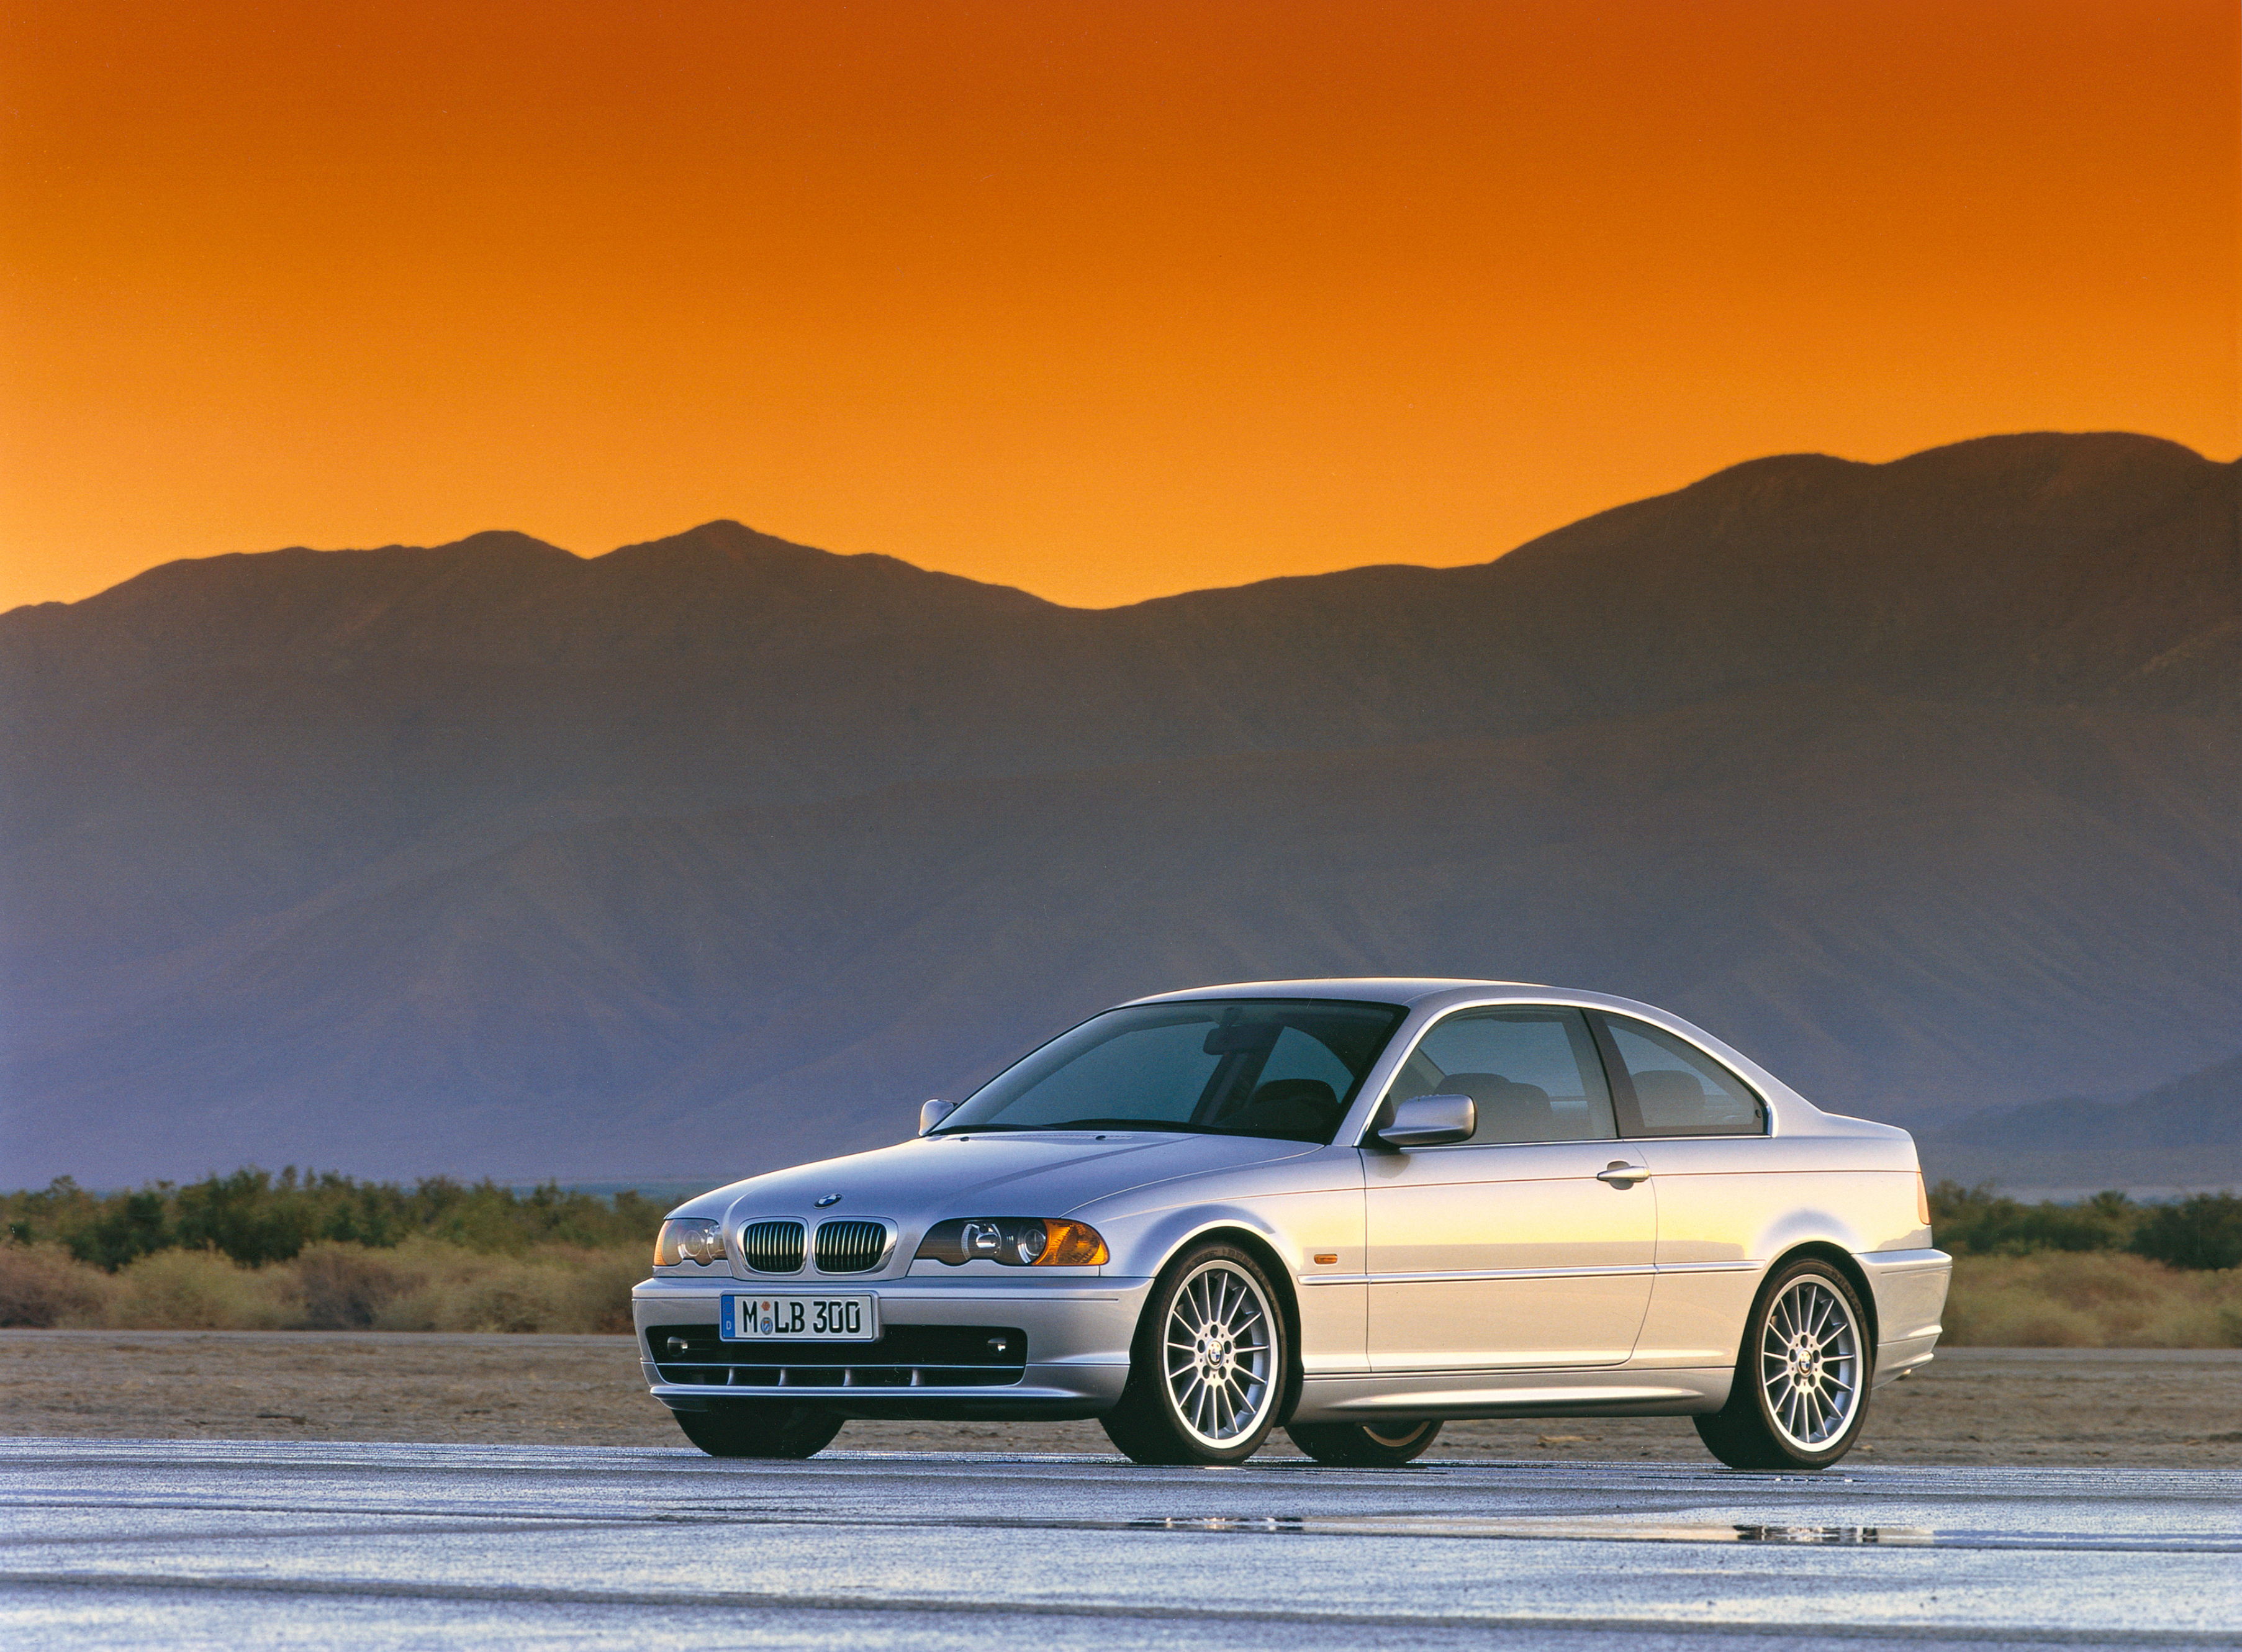 The original E46 was a breakthrough in design